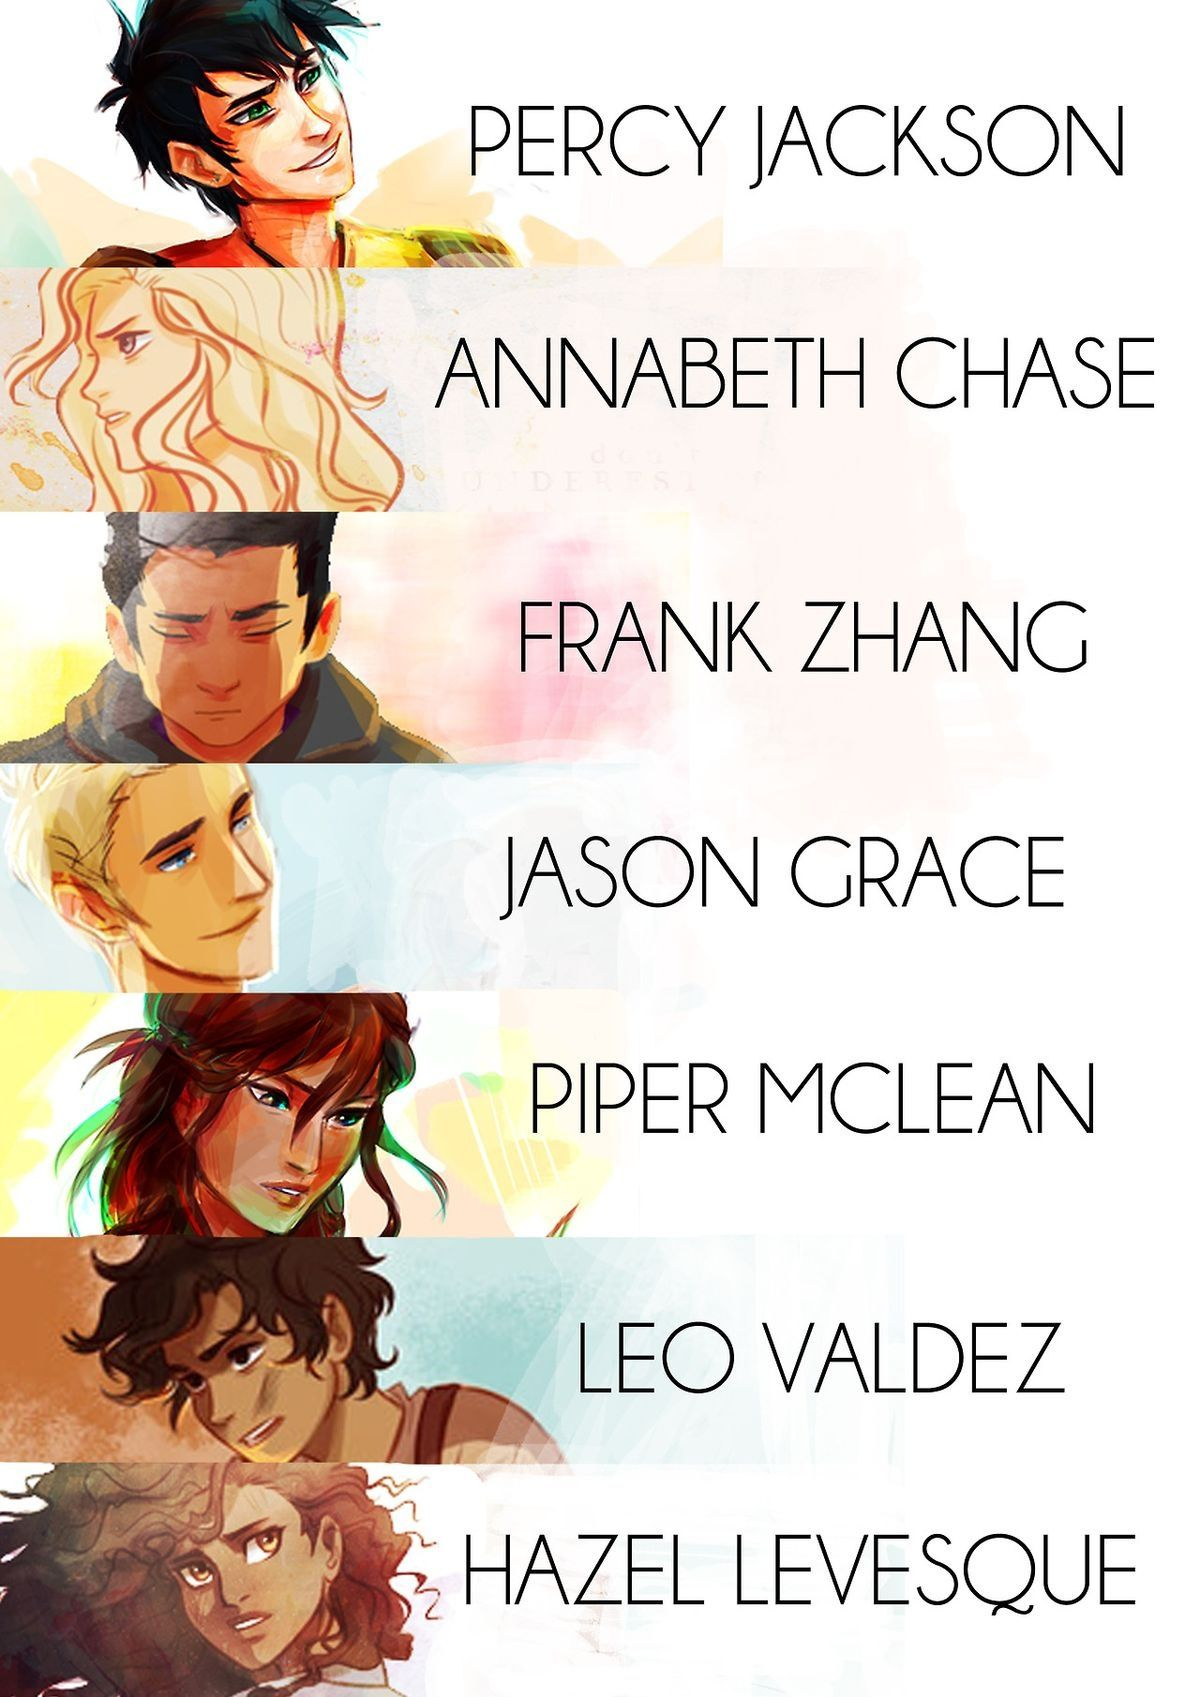 The 7 of the prophecy, Is it just me or is Percy part of like EVERY prophecy?